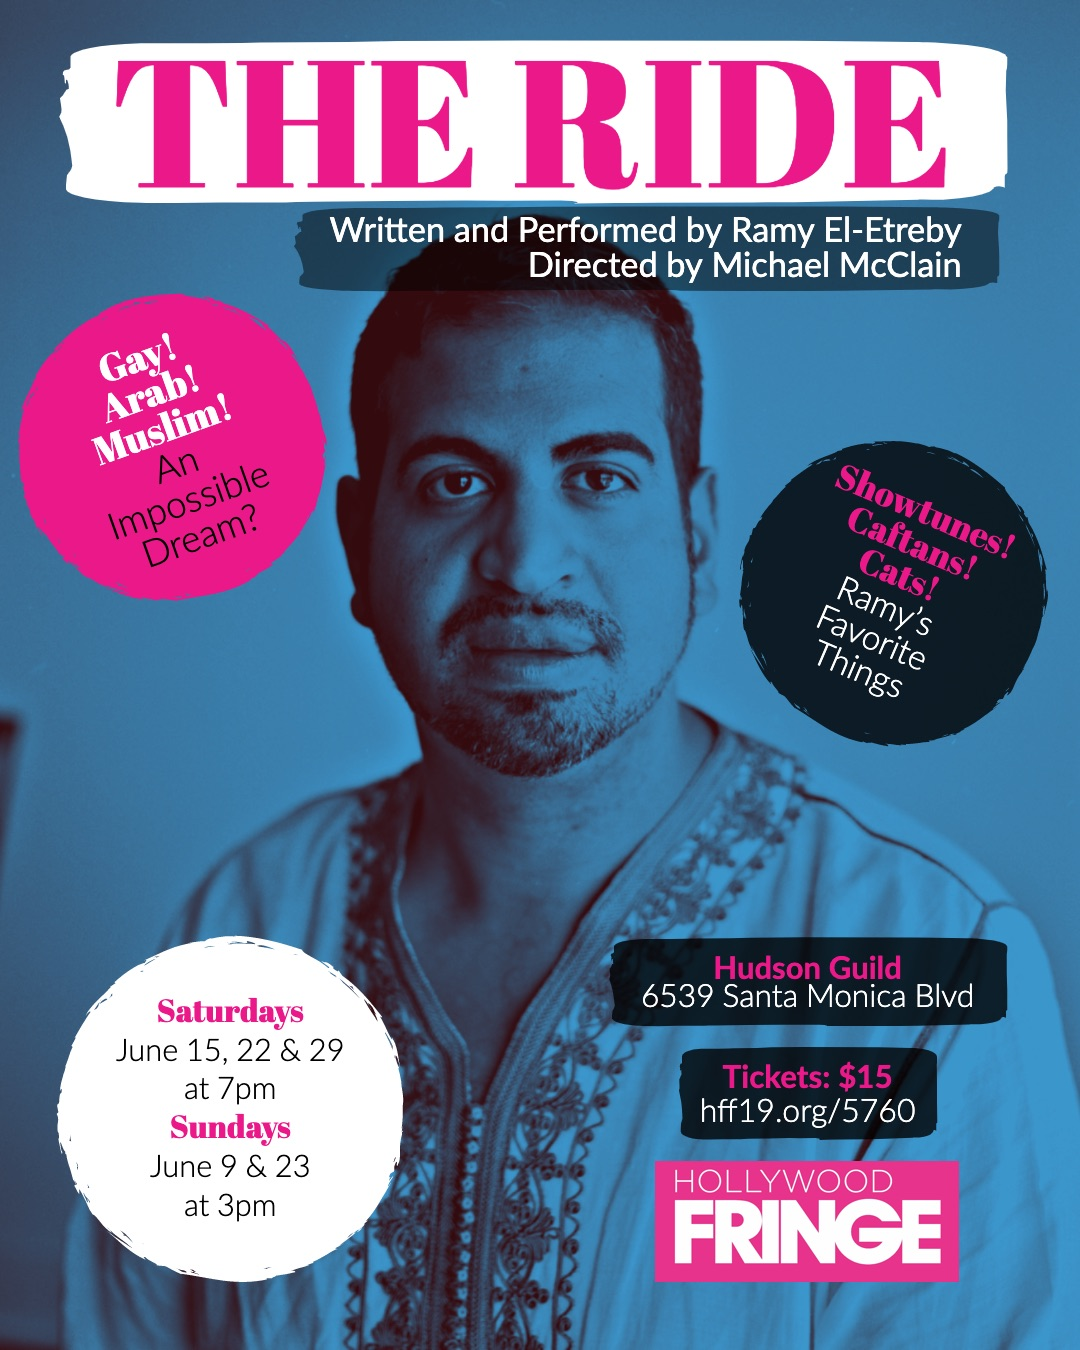 THE RIDE - HoLLYWOOD FRINGE 2019